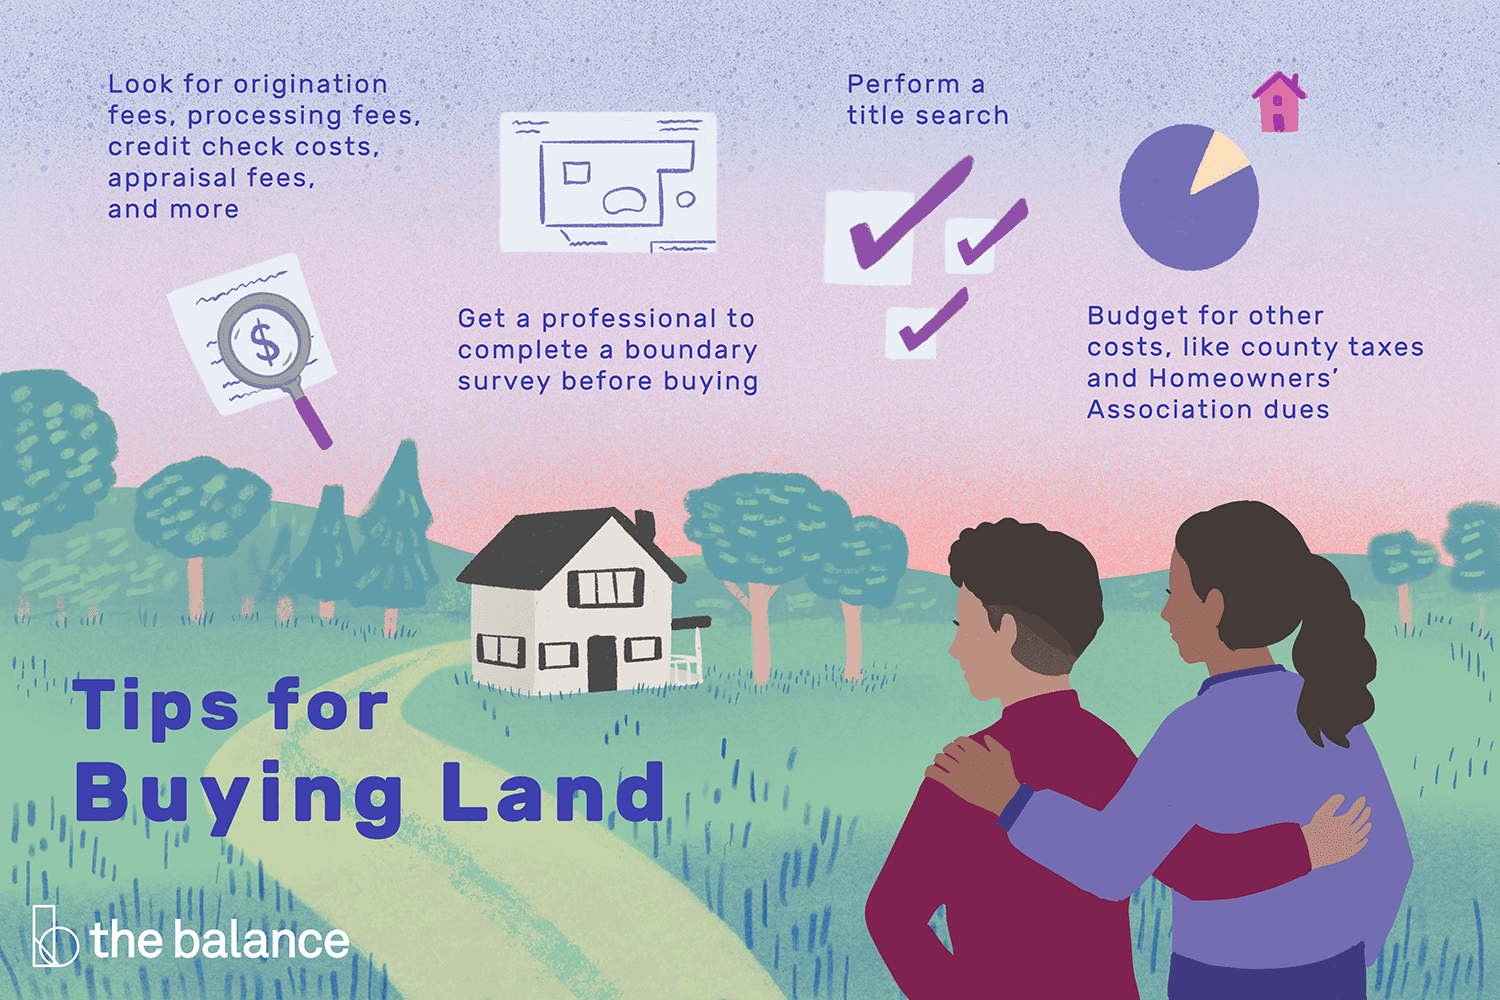 Borrow Money to Buy Land: How to Find Funding